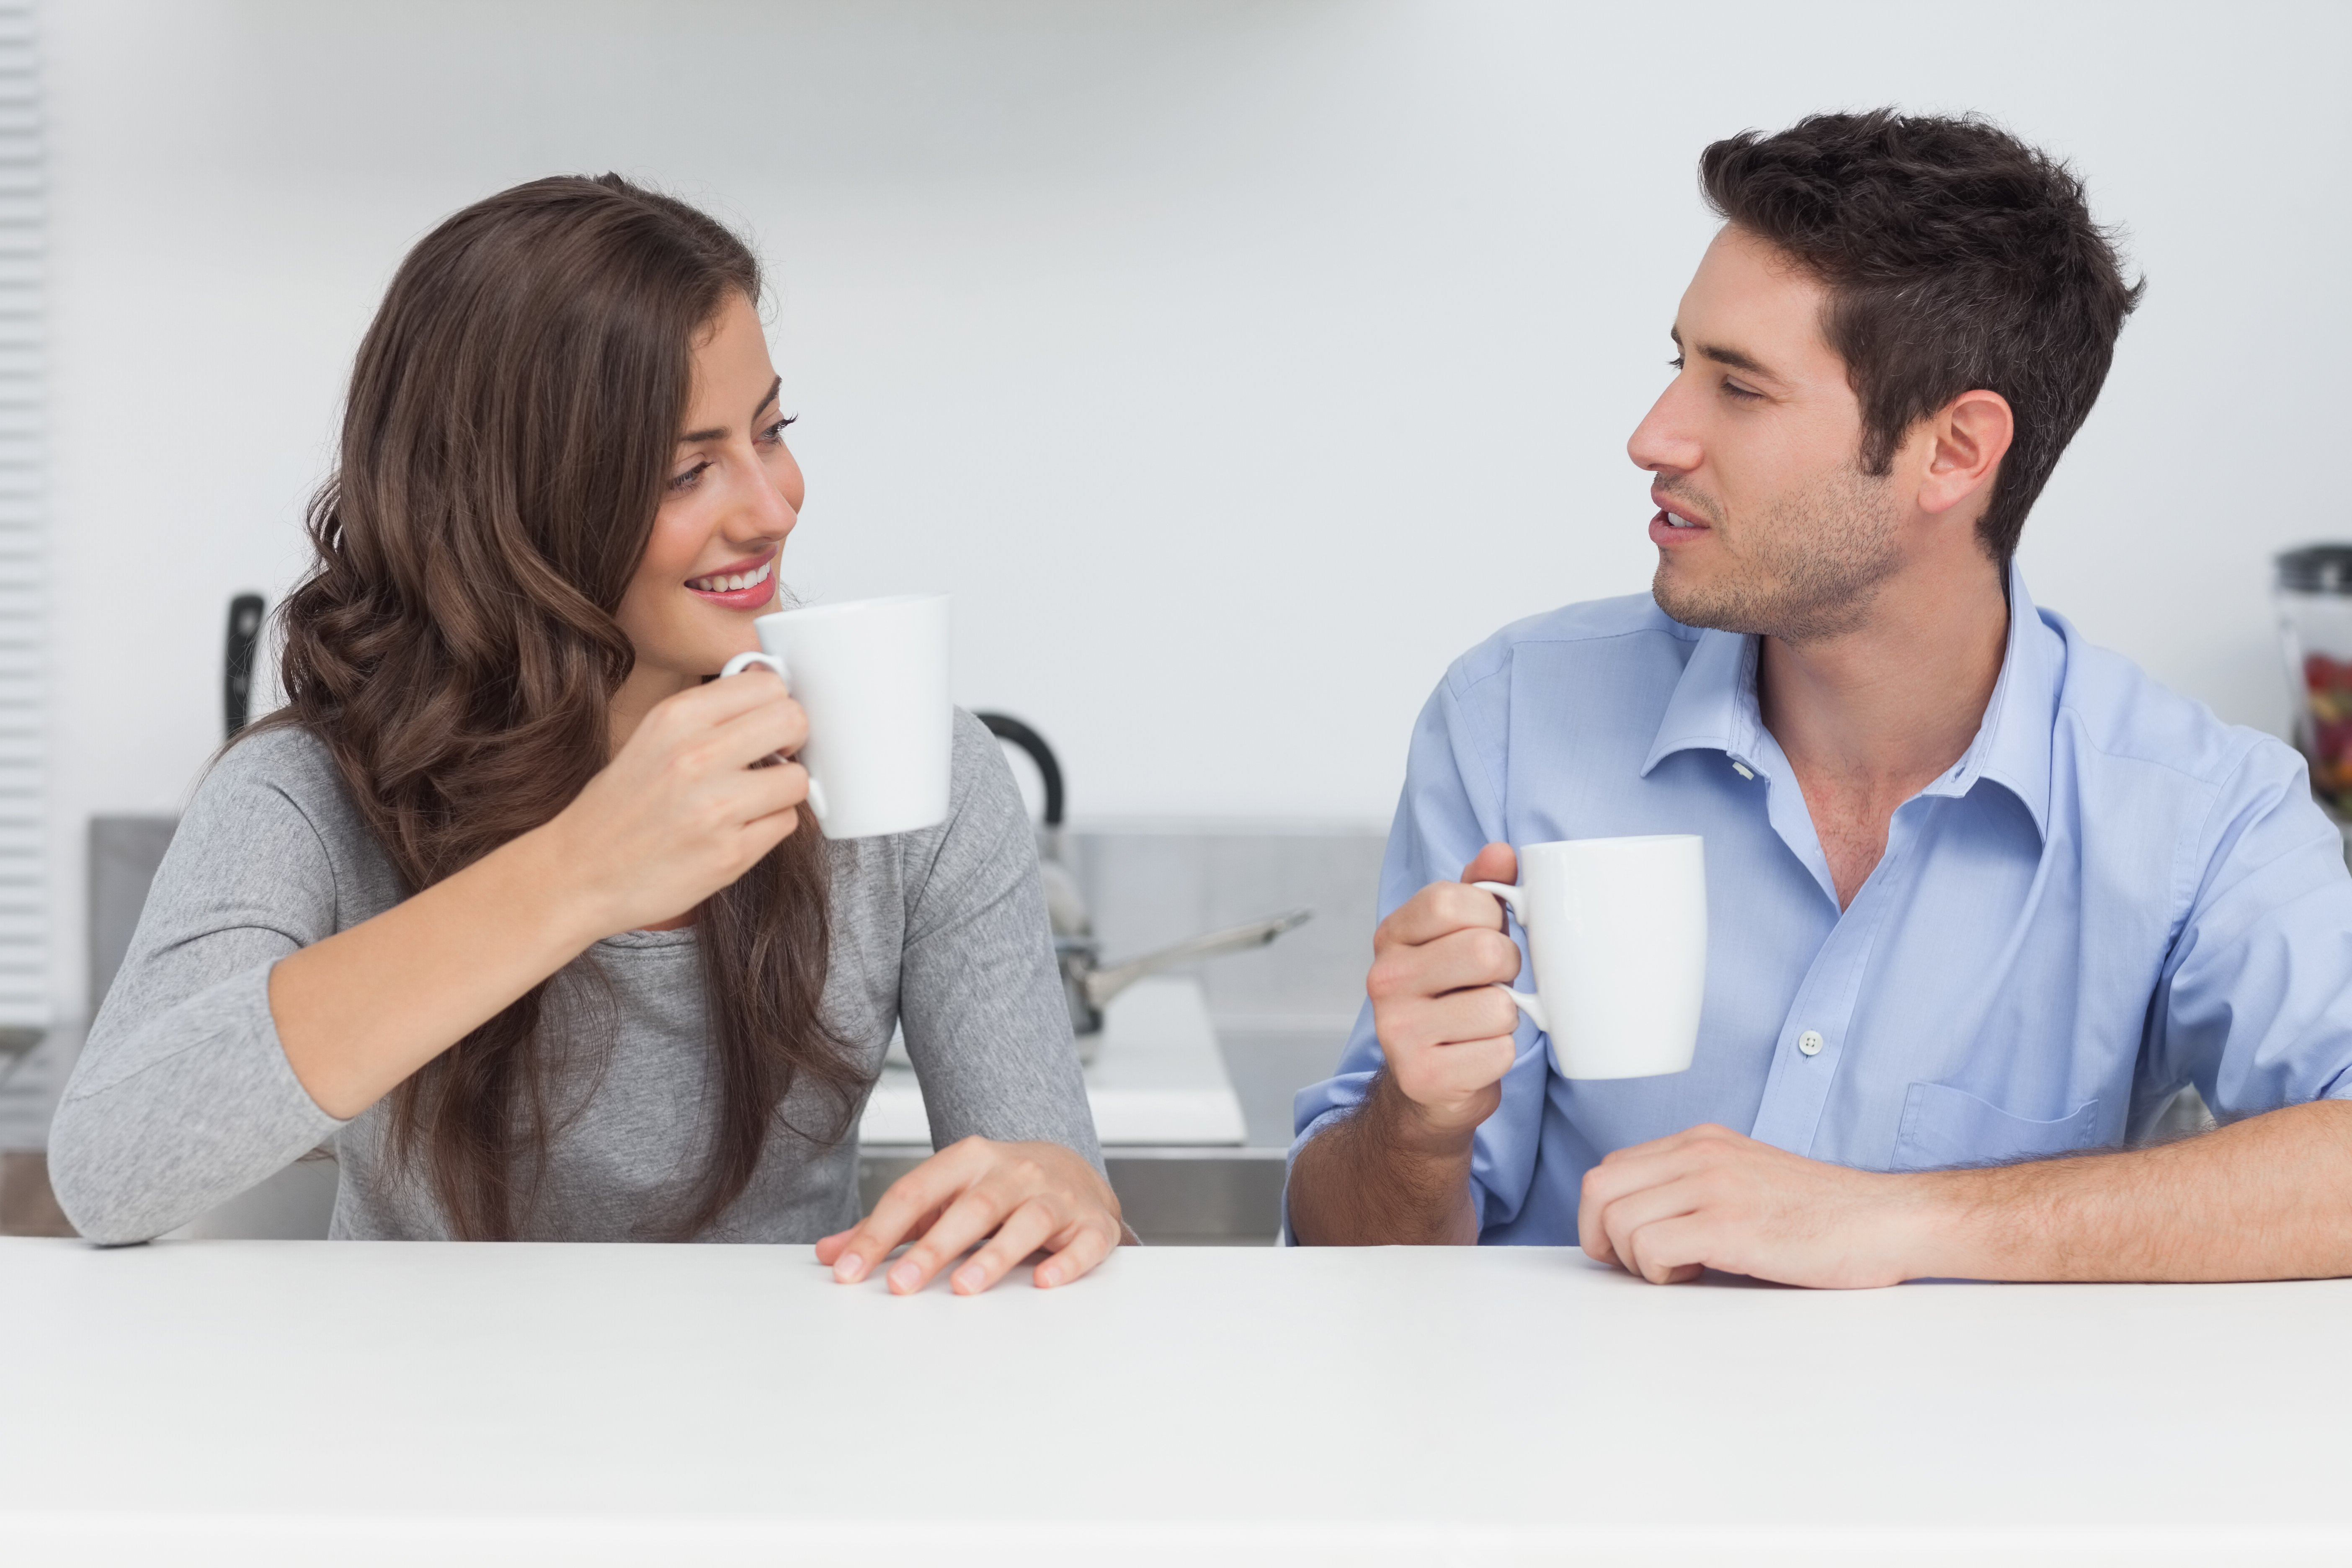 Couple drinking coffee in the kitchen | Photo: Shutterstock